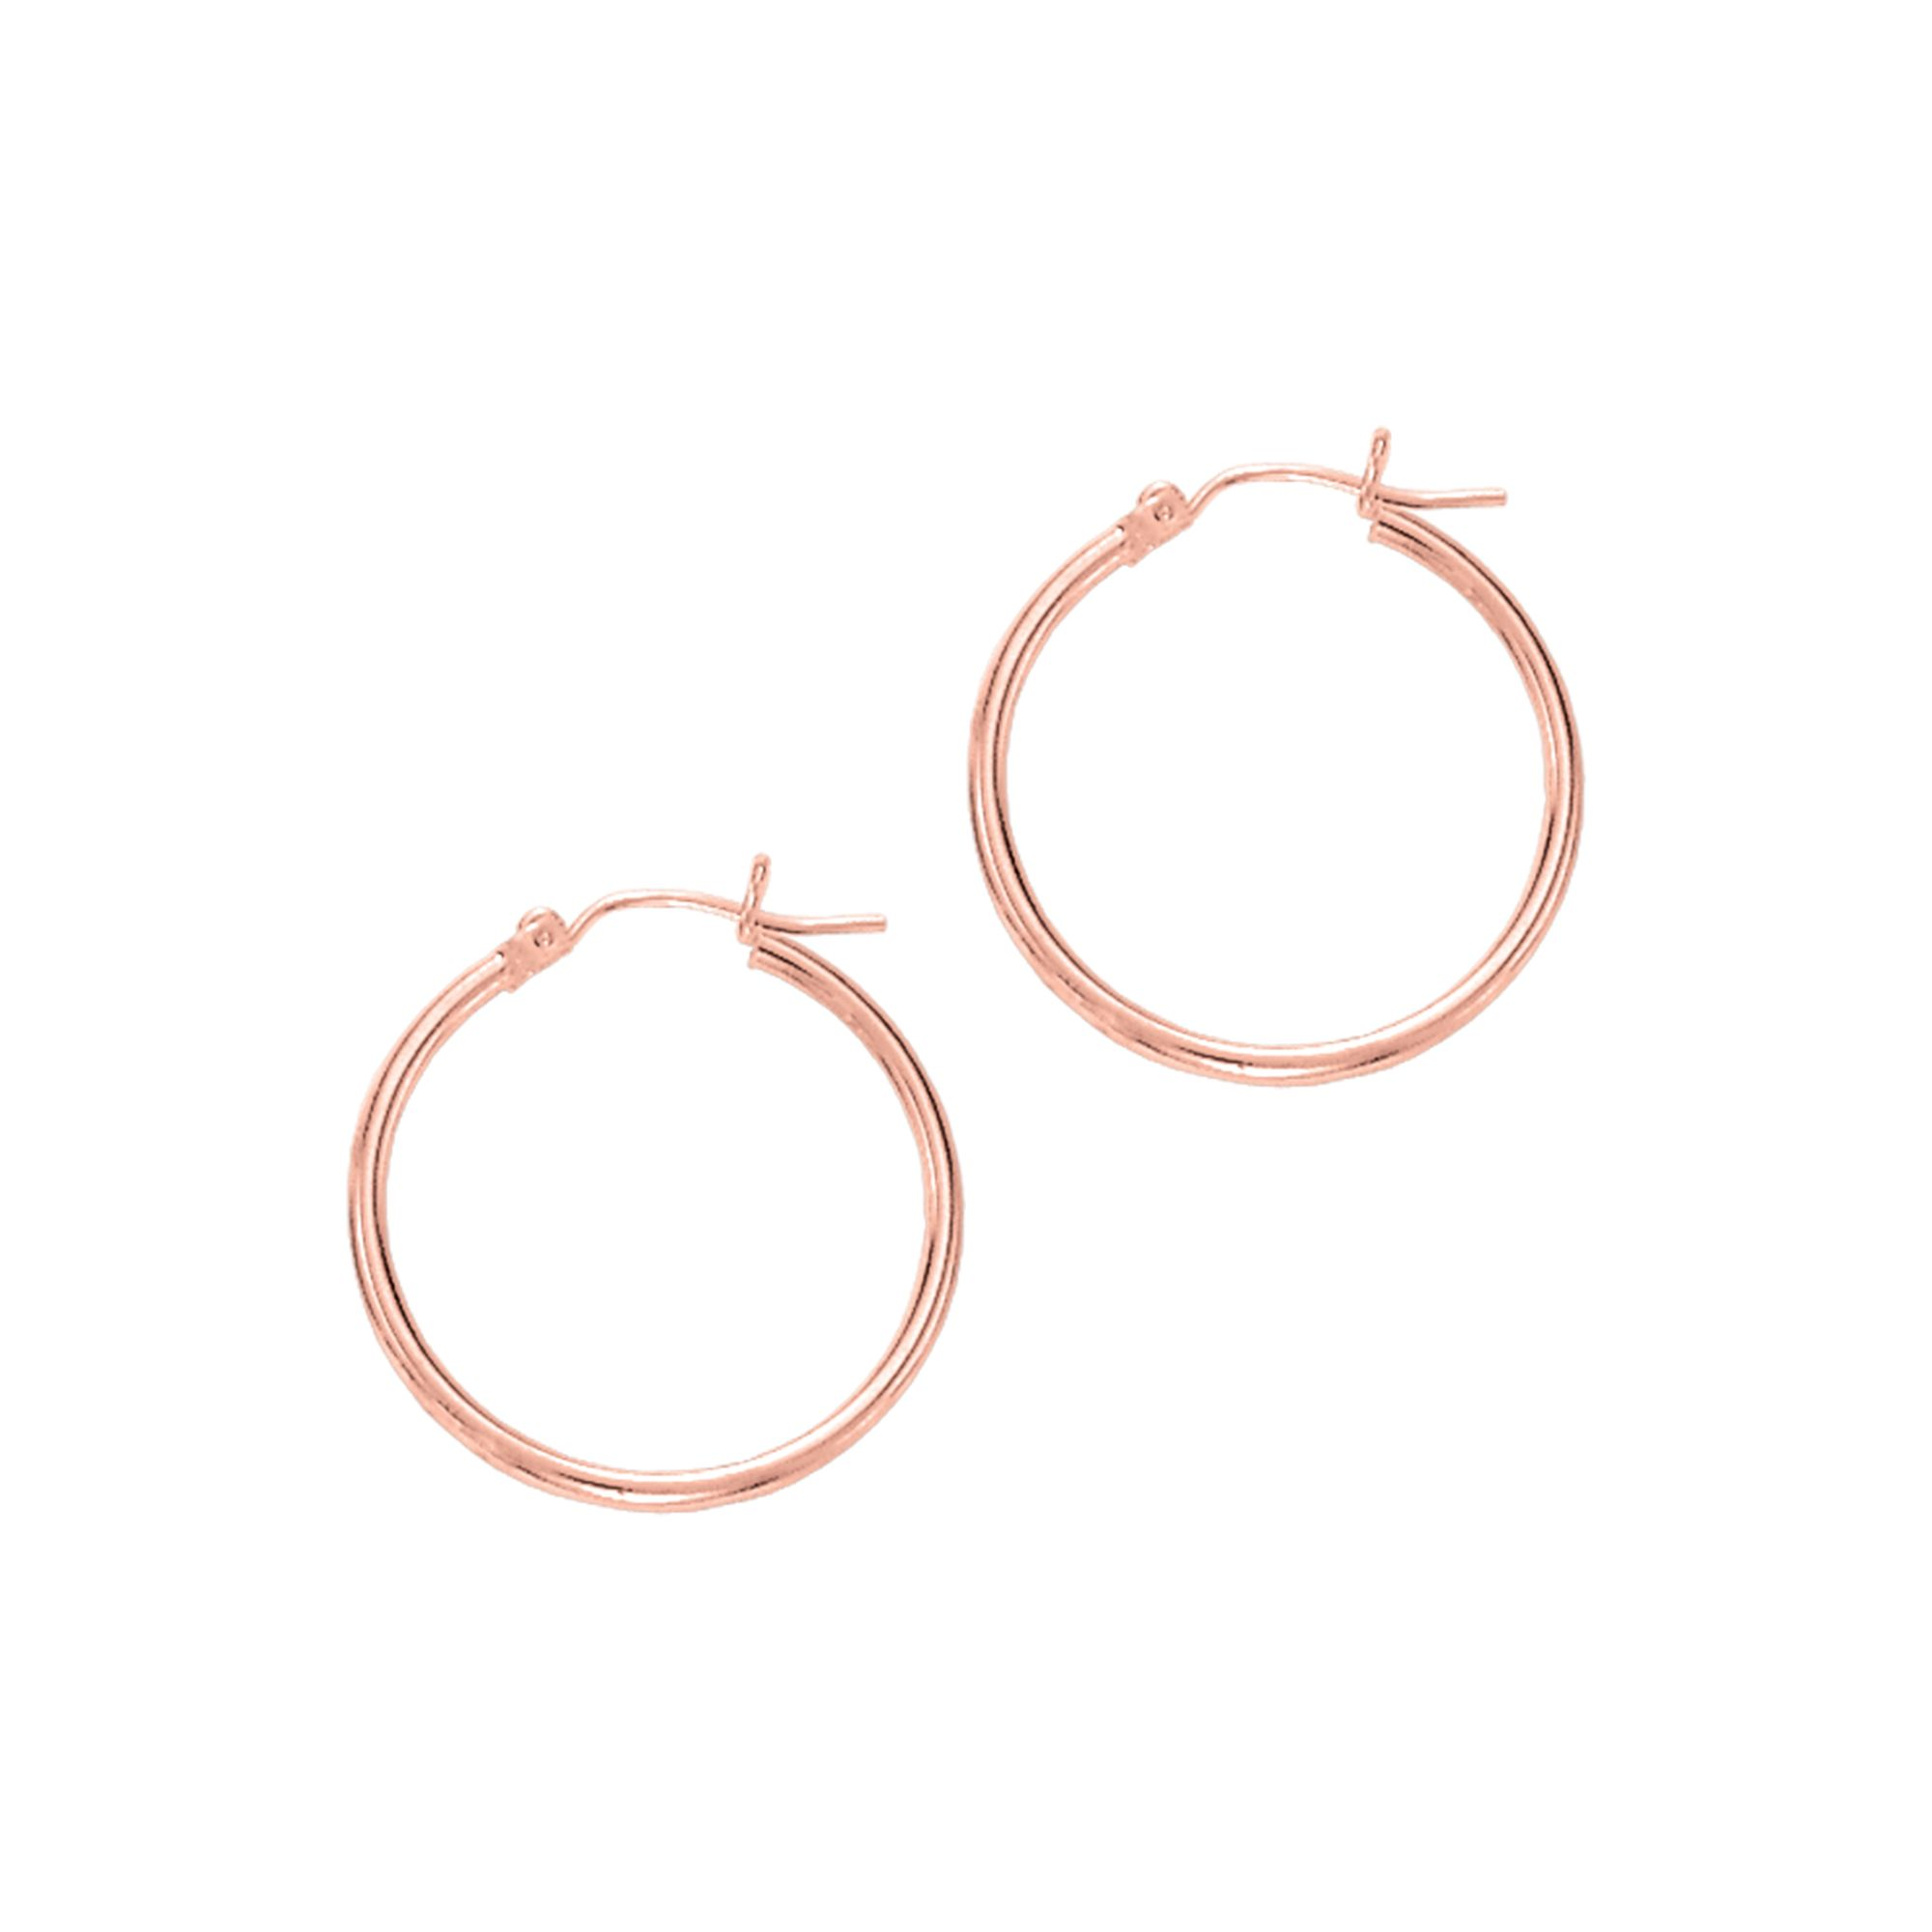 14 Karat Gold 2 mm Polished Hoop Earrings